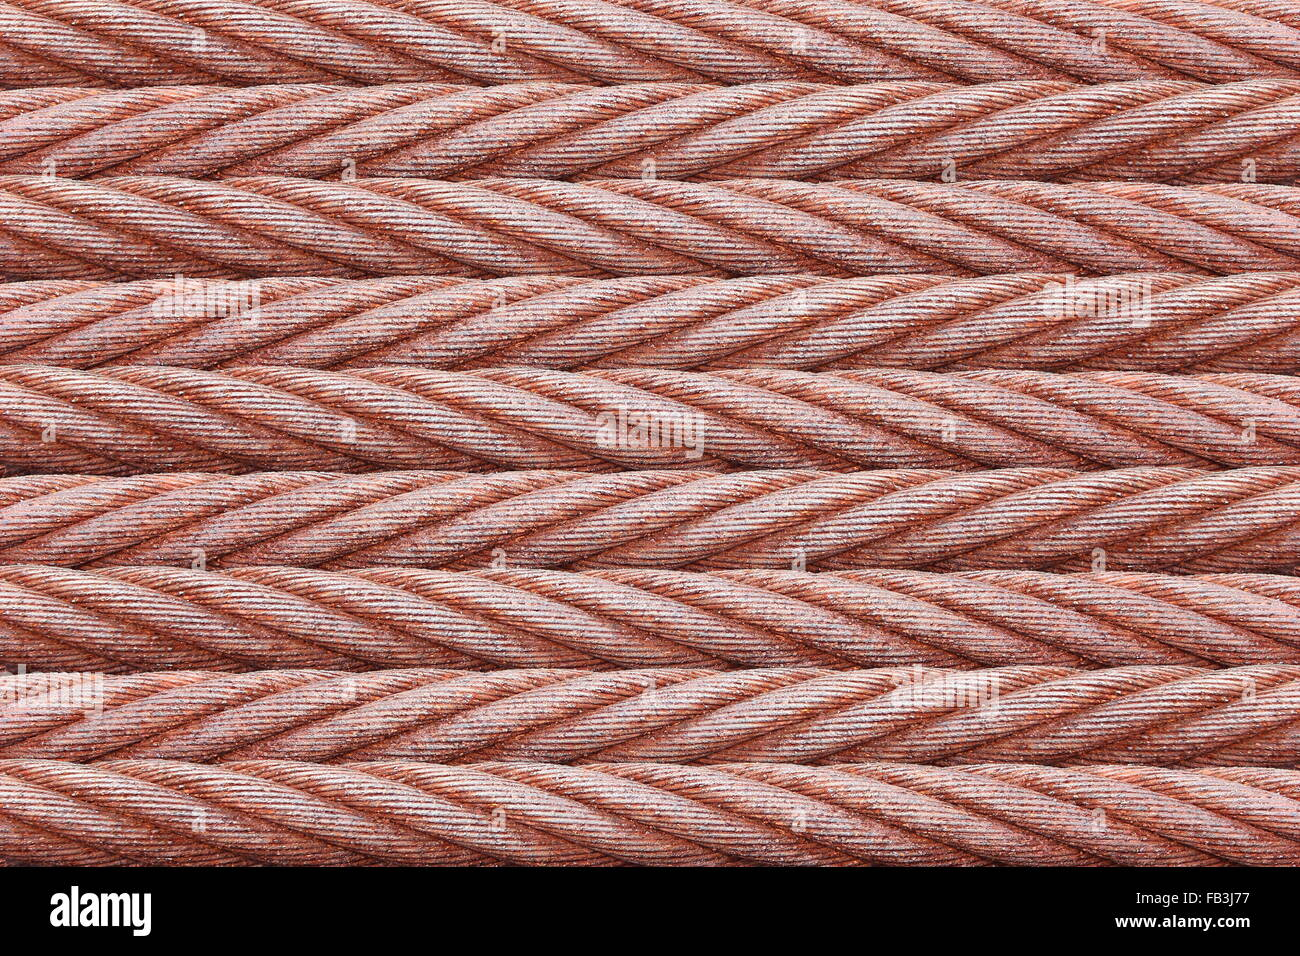 background and texture of many rusty wire rope sling - Stock Image